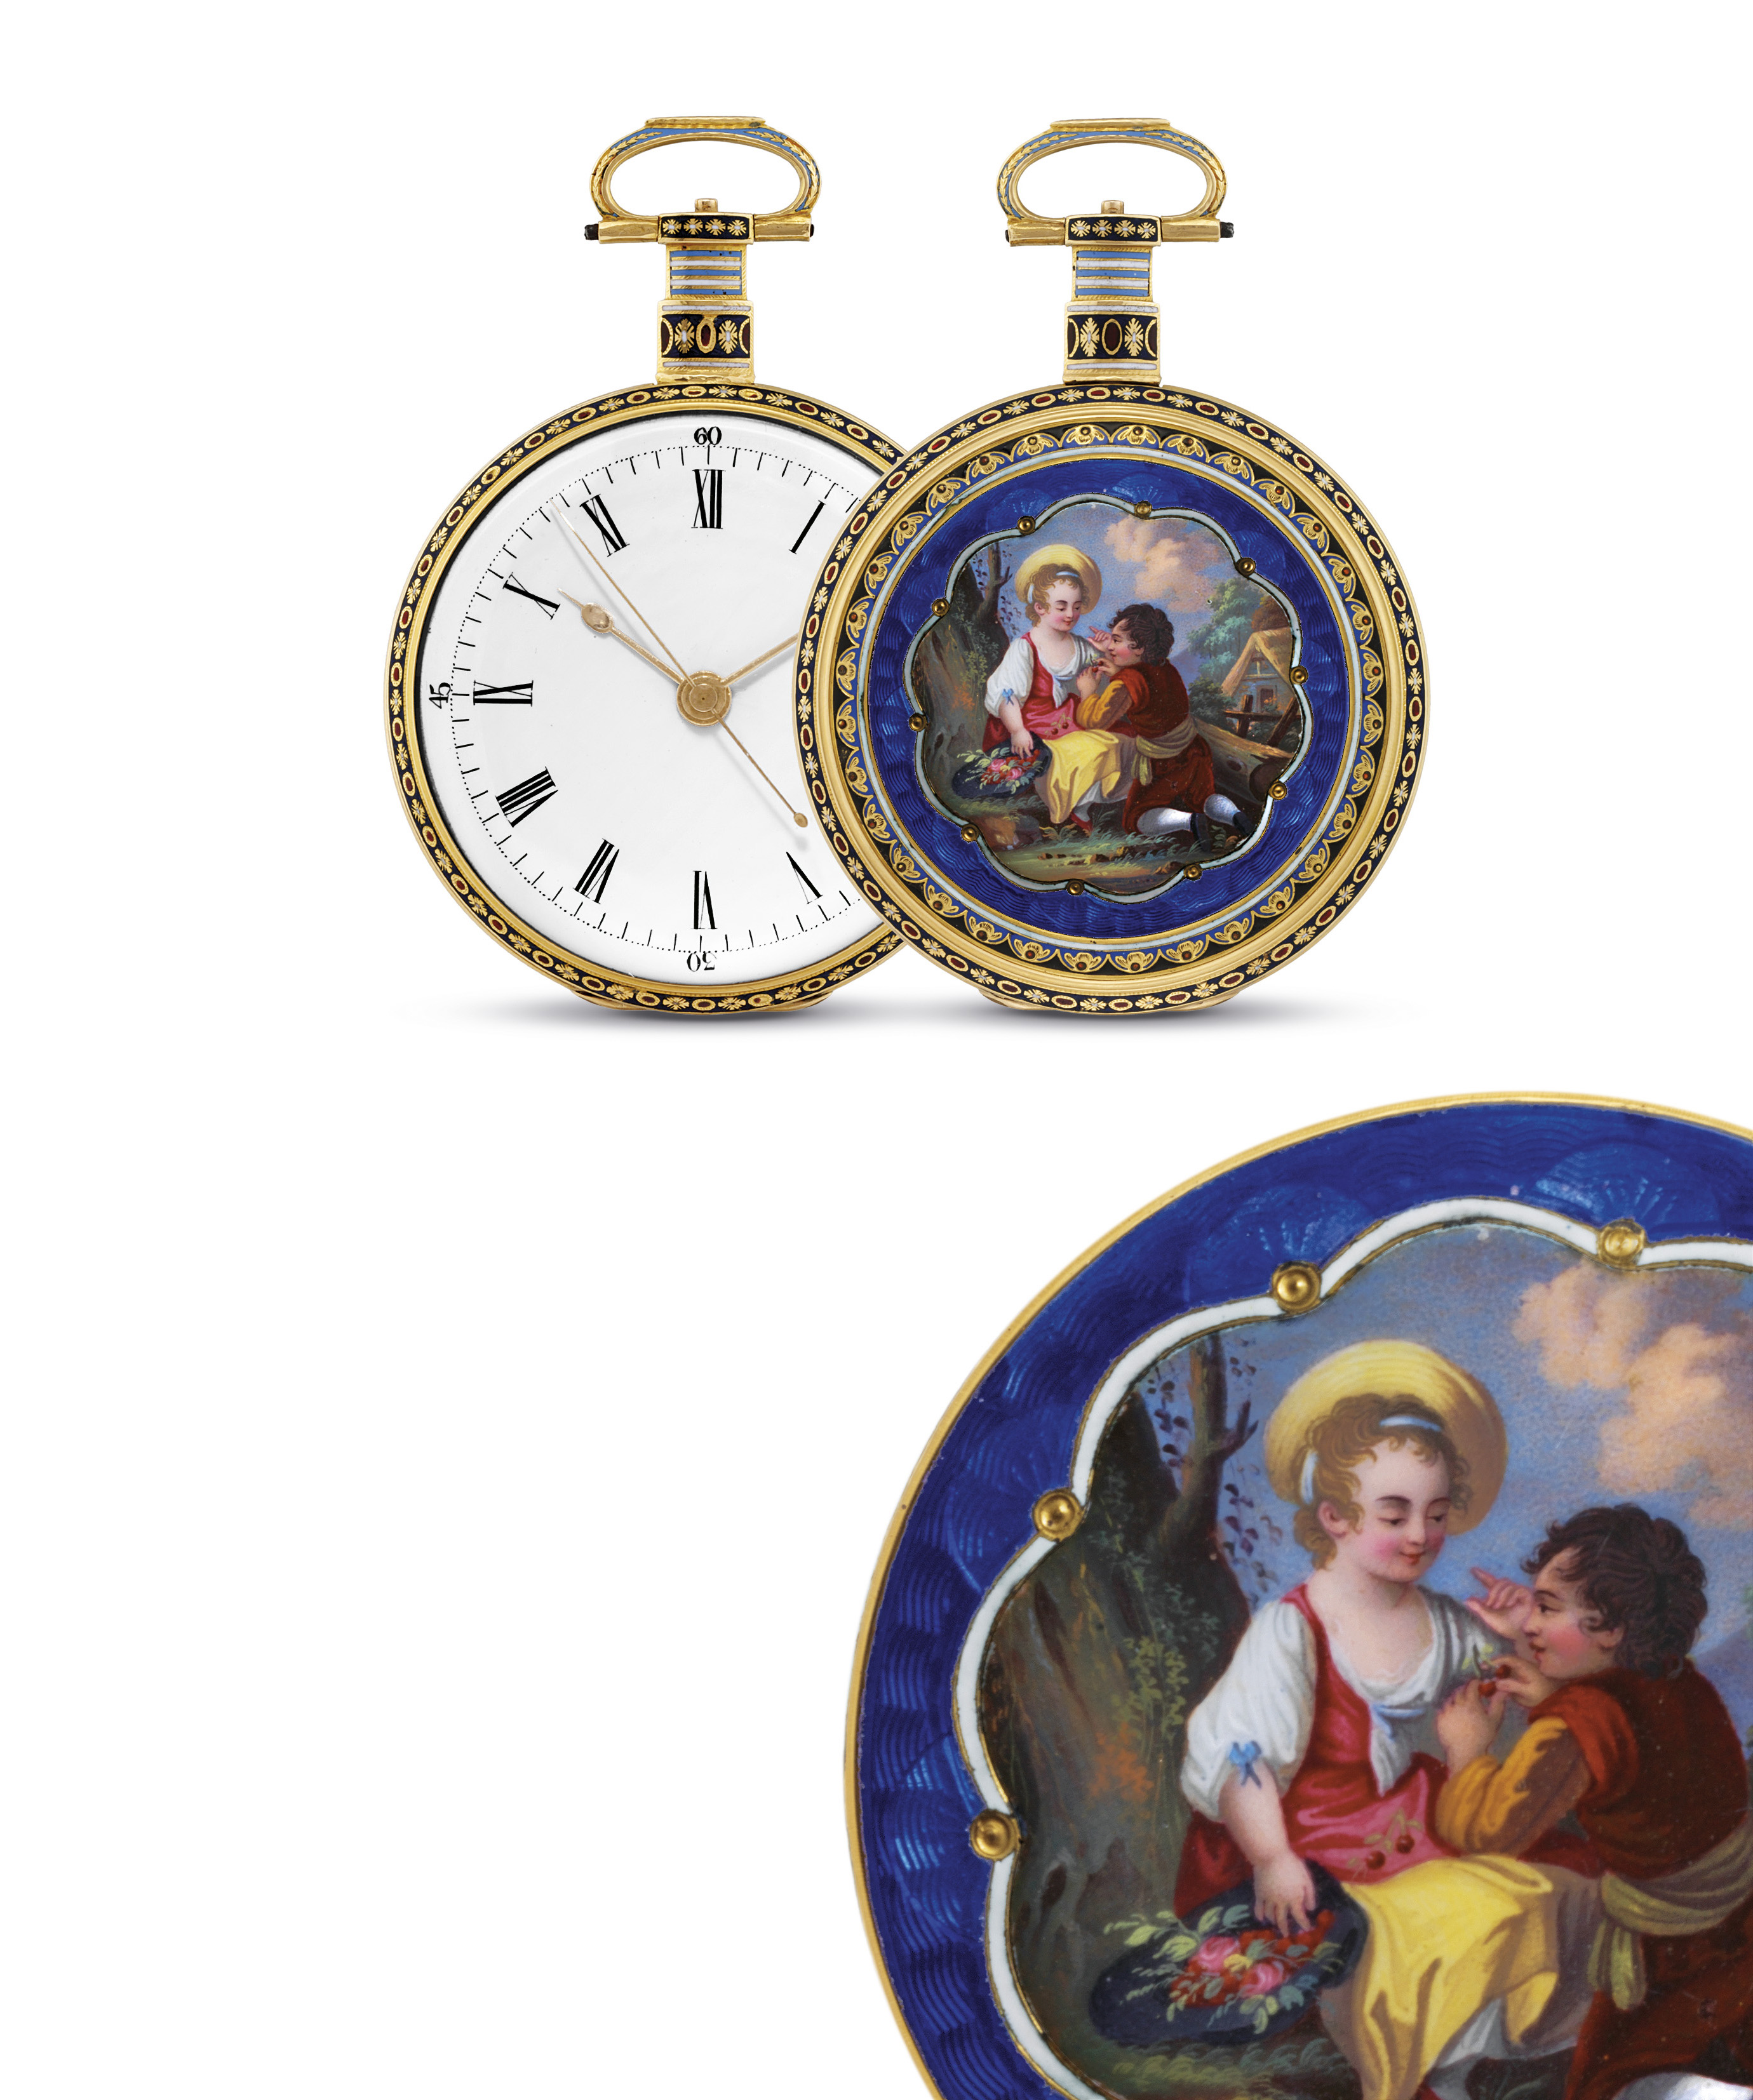 ILBERY. A FINE AND RARE GOLD AND ENAMEL OPENFACE CENTRE SECONDS DUPLEX WATCH, MADE FOR THE CHINESE MARKET